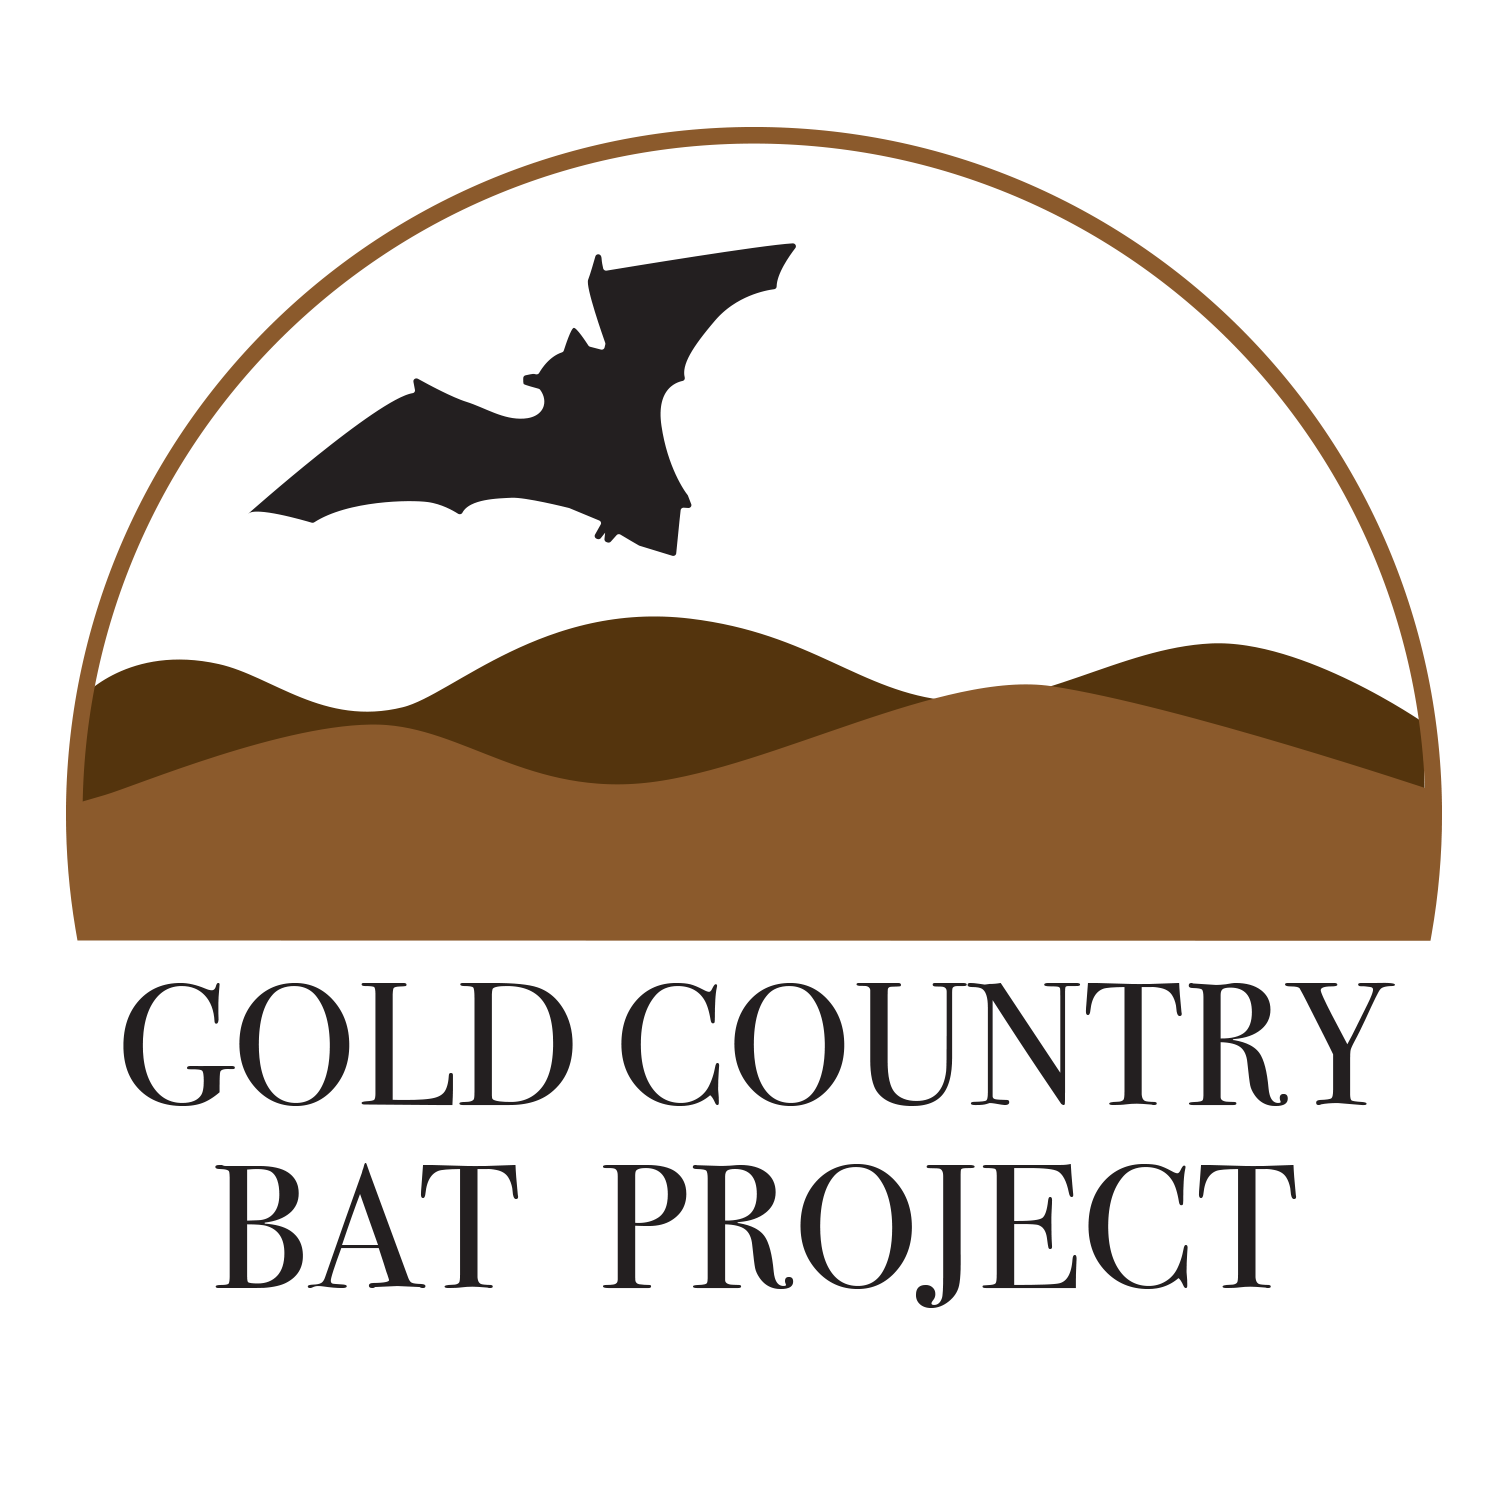 Gold Country Bat Project